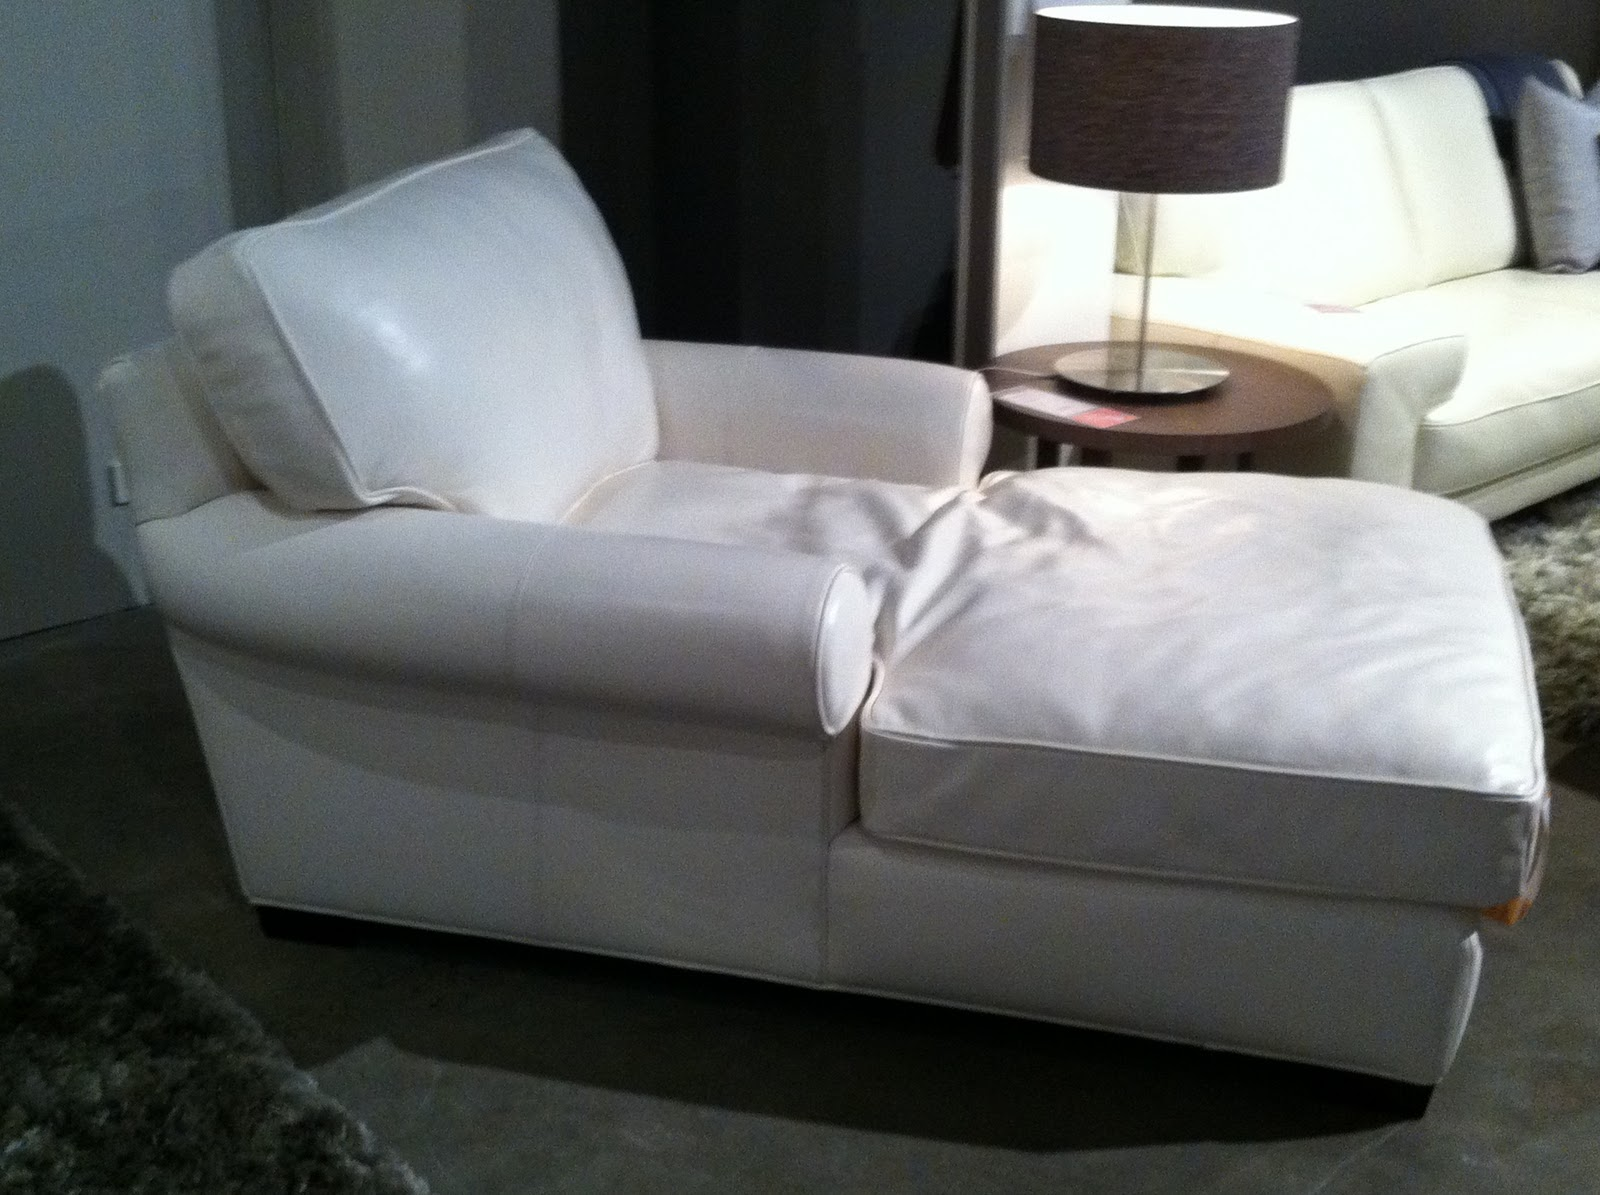 Shayne jason build a house chaise love - Chaise a housser ...